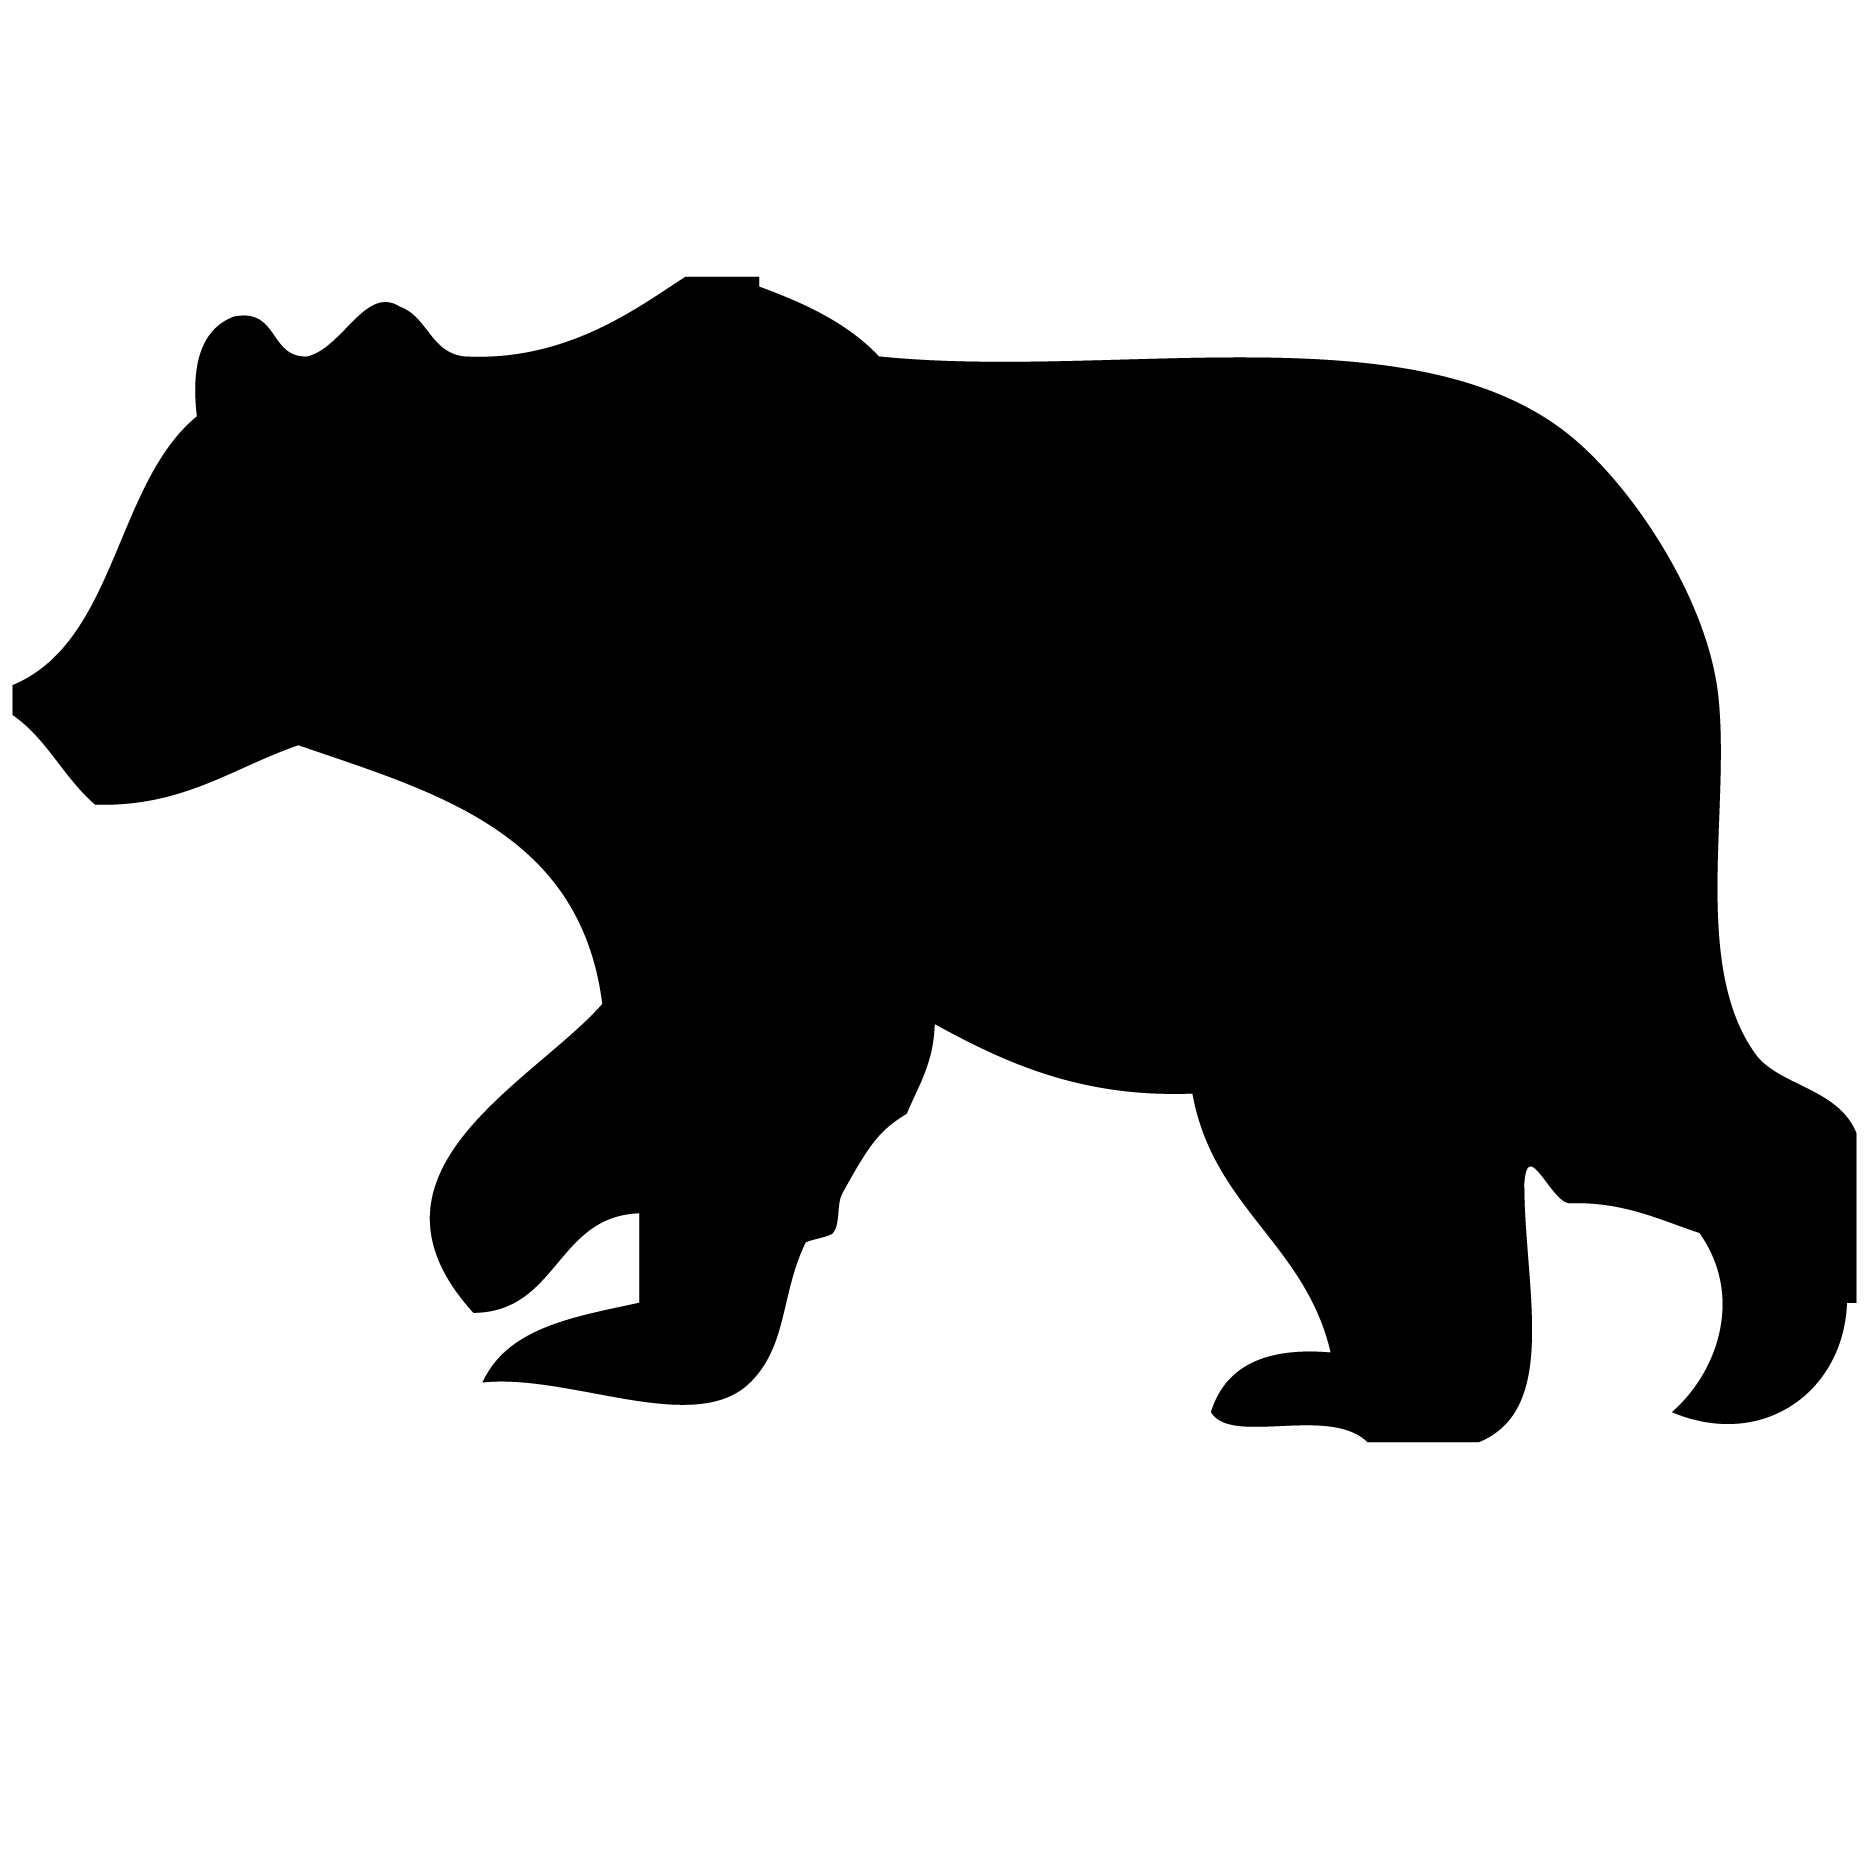 bear vector silhouette at getdrawings com free for personal use rh getdrawings com bear factory outlet bear factory shop uk